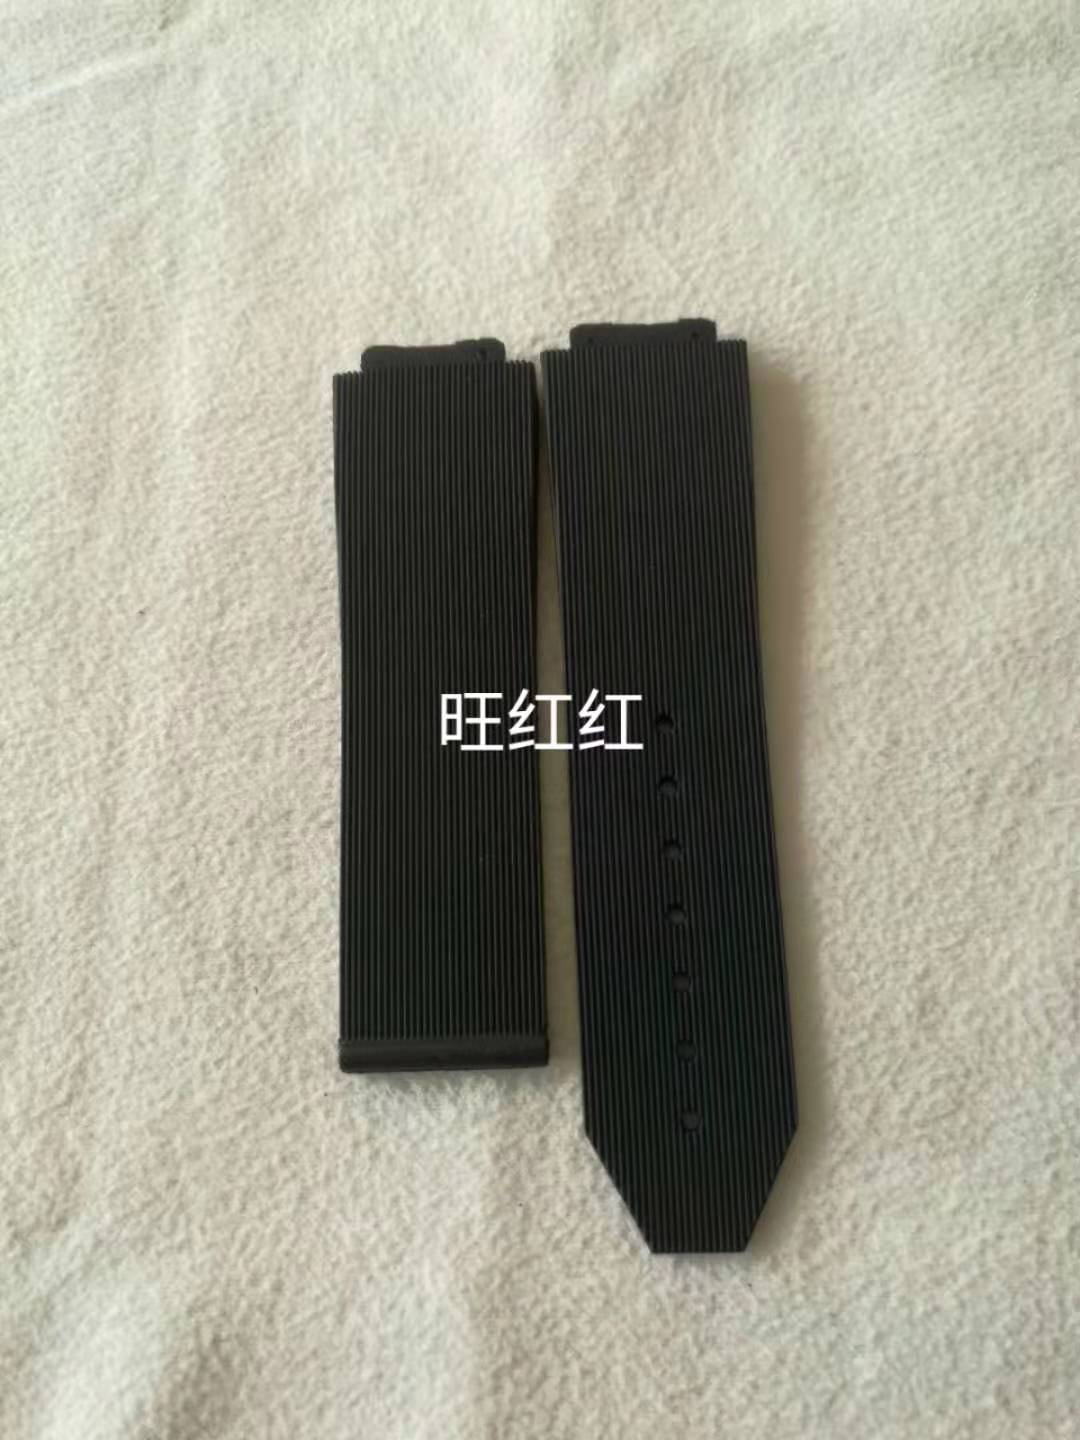 Suitable for substitute Hengbao high-grade / waterproof rubber silicone watch striped belt accessories (Zhongtong parcel post)